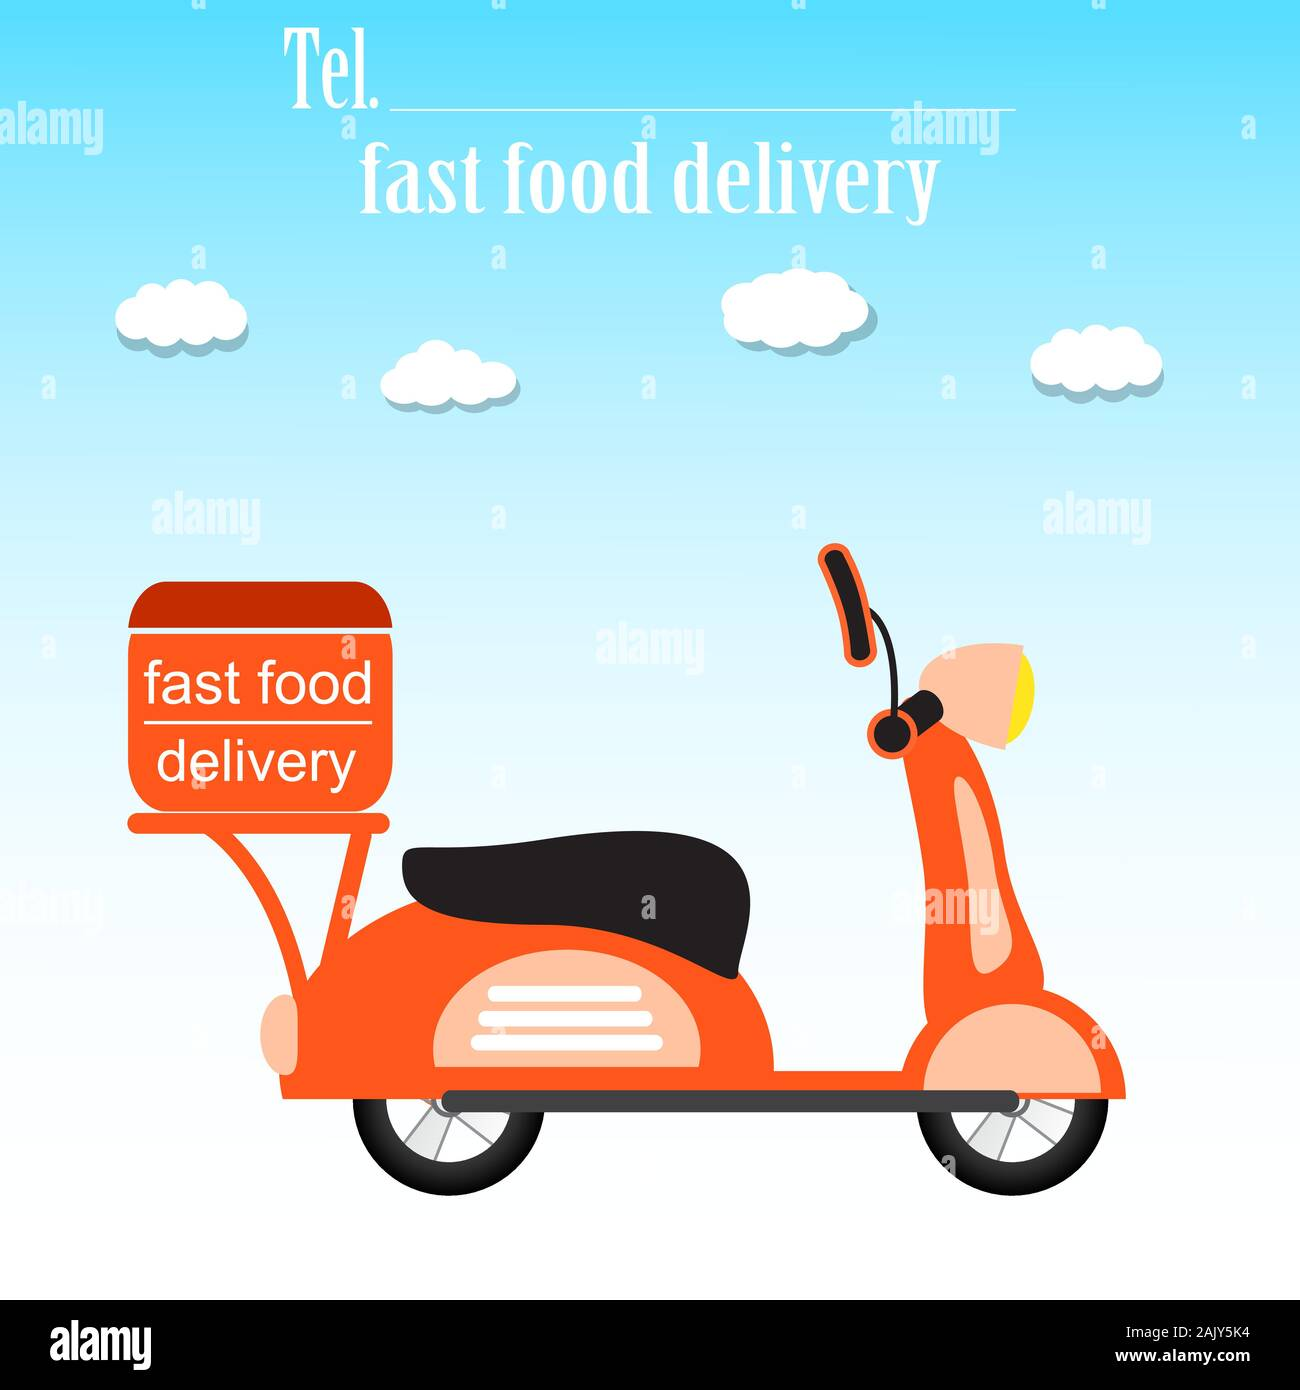 fast and free delivery fast food delivery food service retro scooter vector illustration stock vector image art alamy https www alamy com fast and free delivery fast food delivery food service retro scooter vector illustration image338657960 html